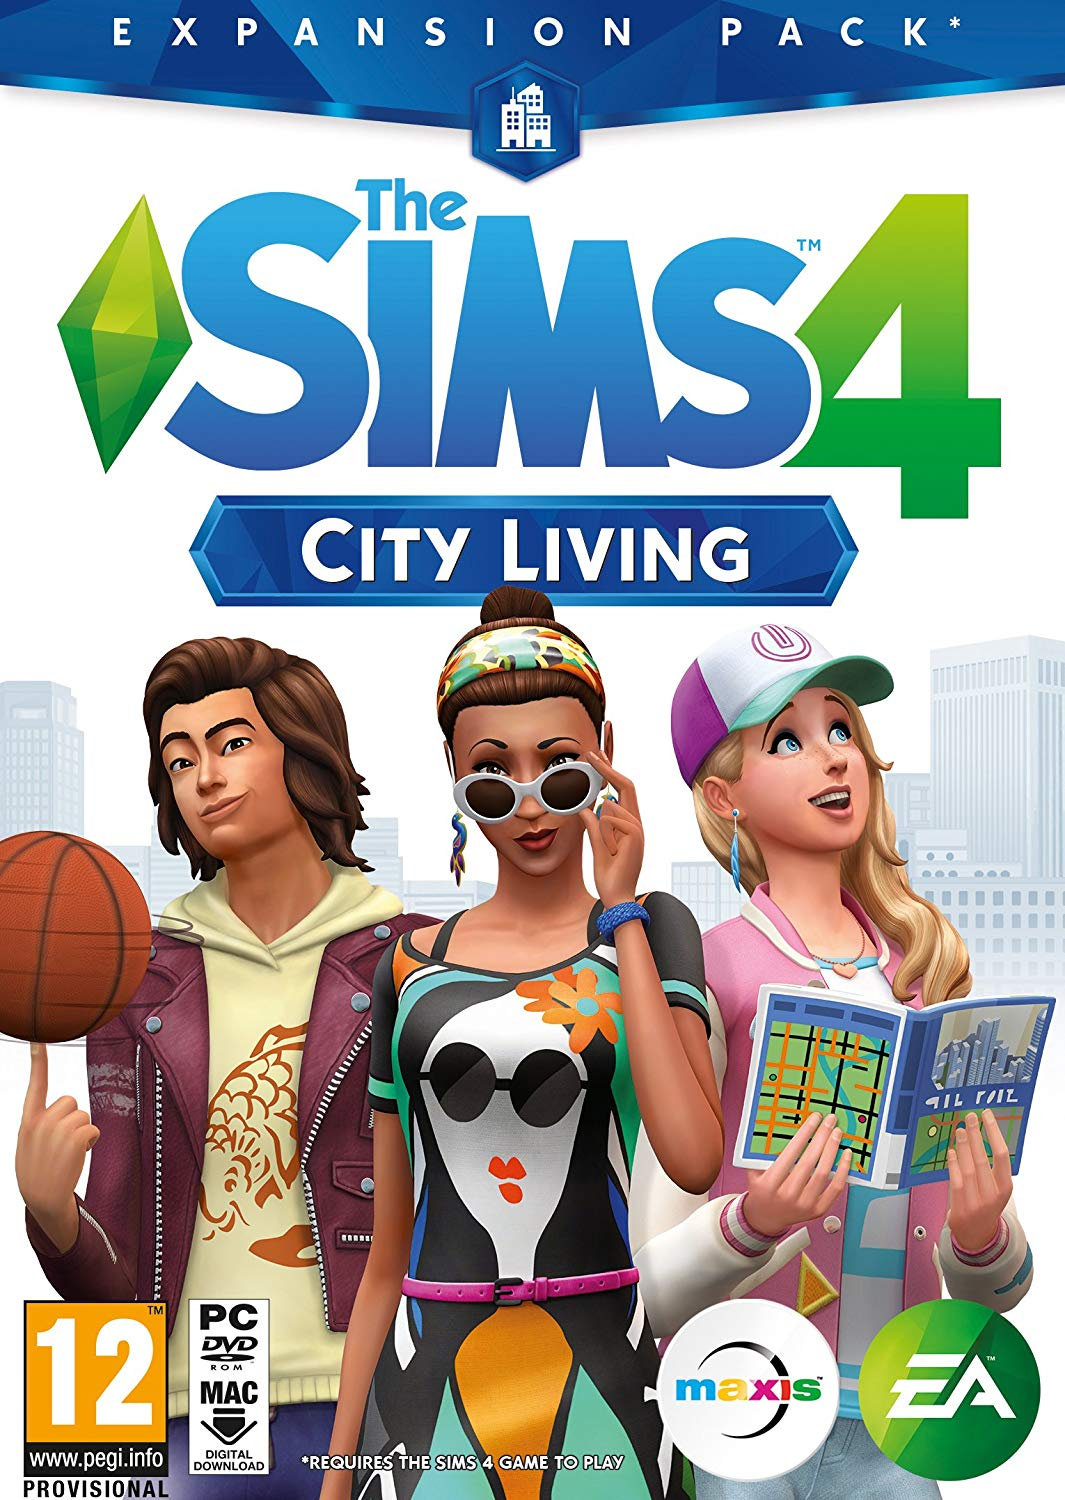 THE SIMS 3 DIESEL STUFF EXPANSION PACK - £3 66 : The Game Booth